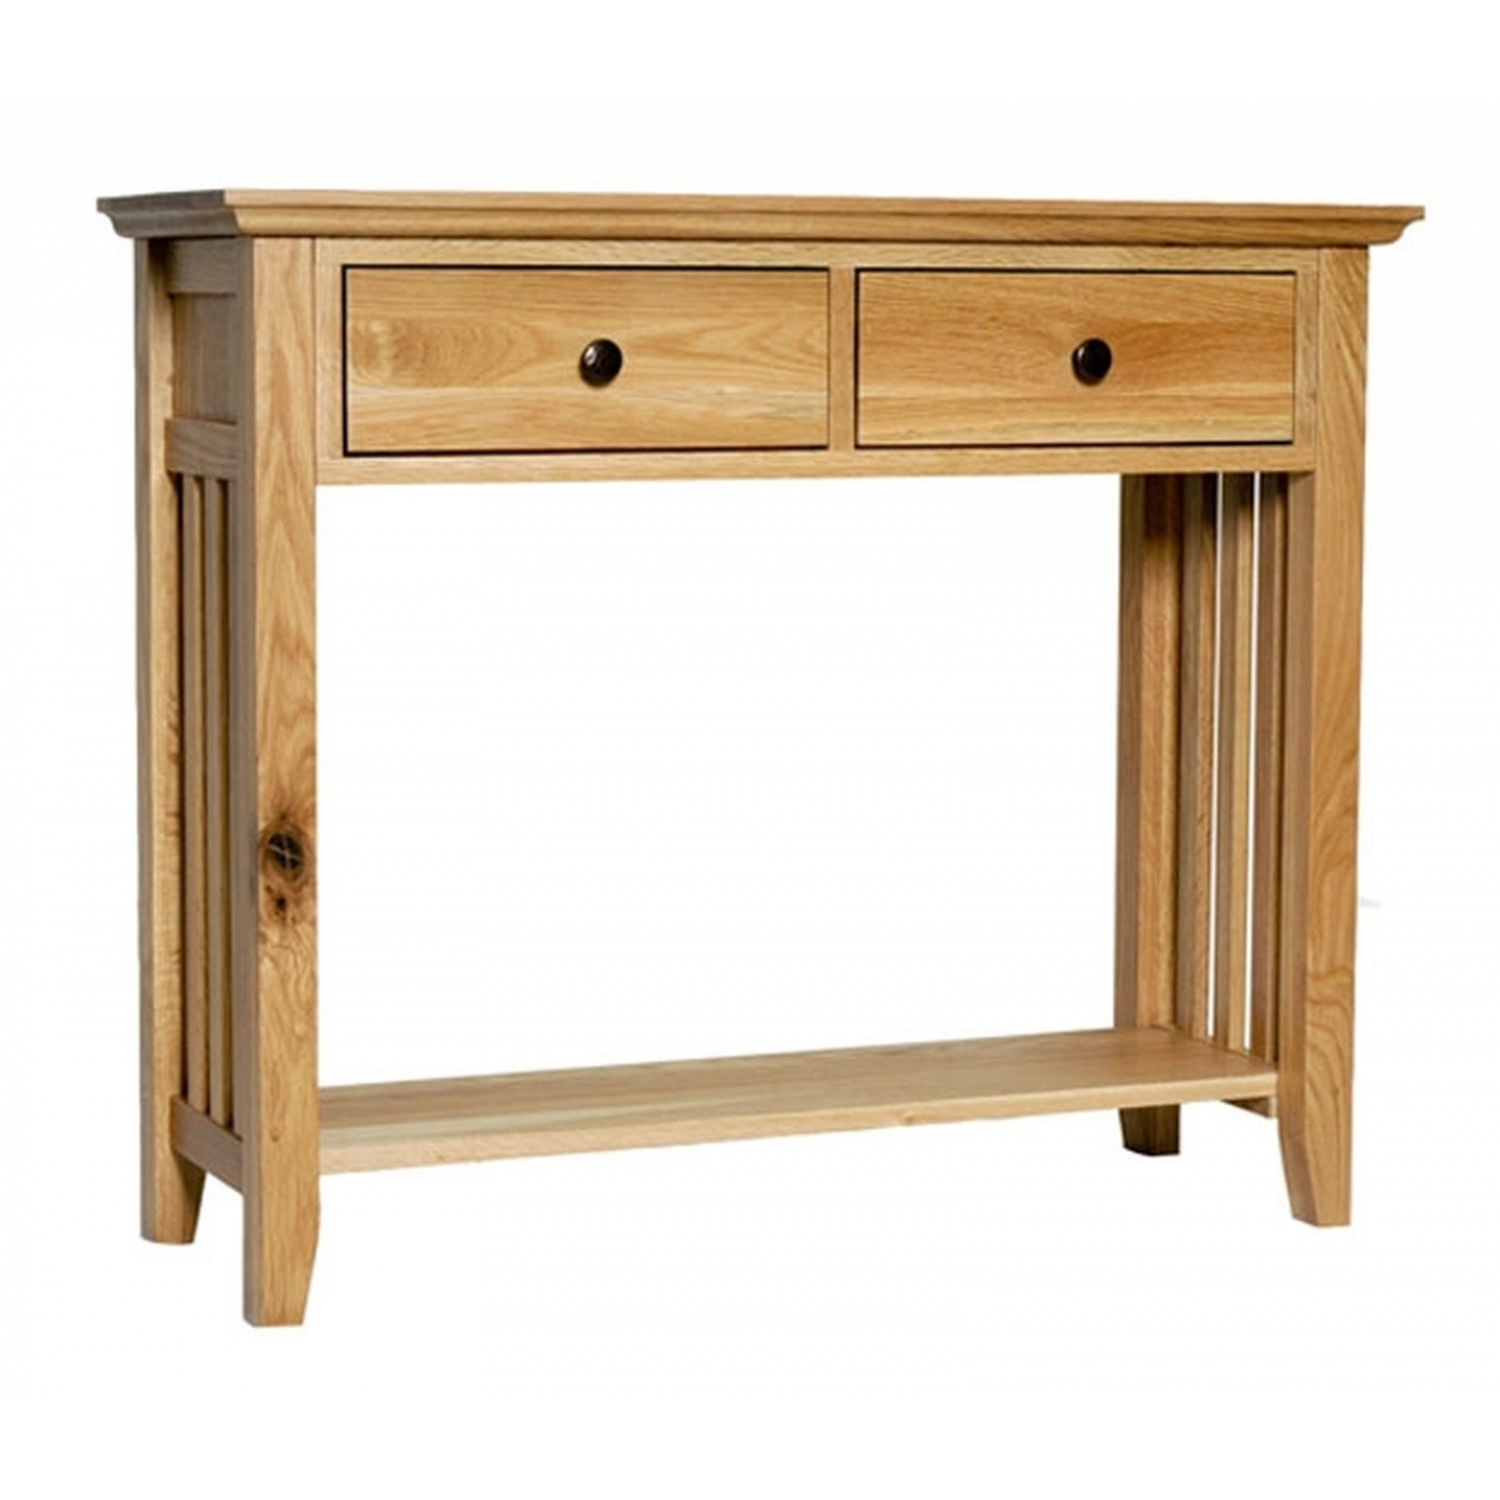 Belfry solid oak furniture hallway console hall table with for Living hall furniture